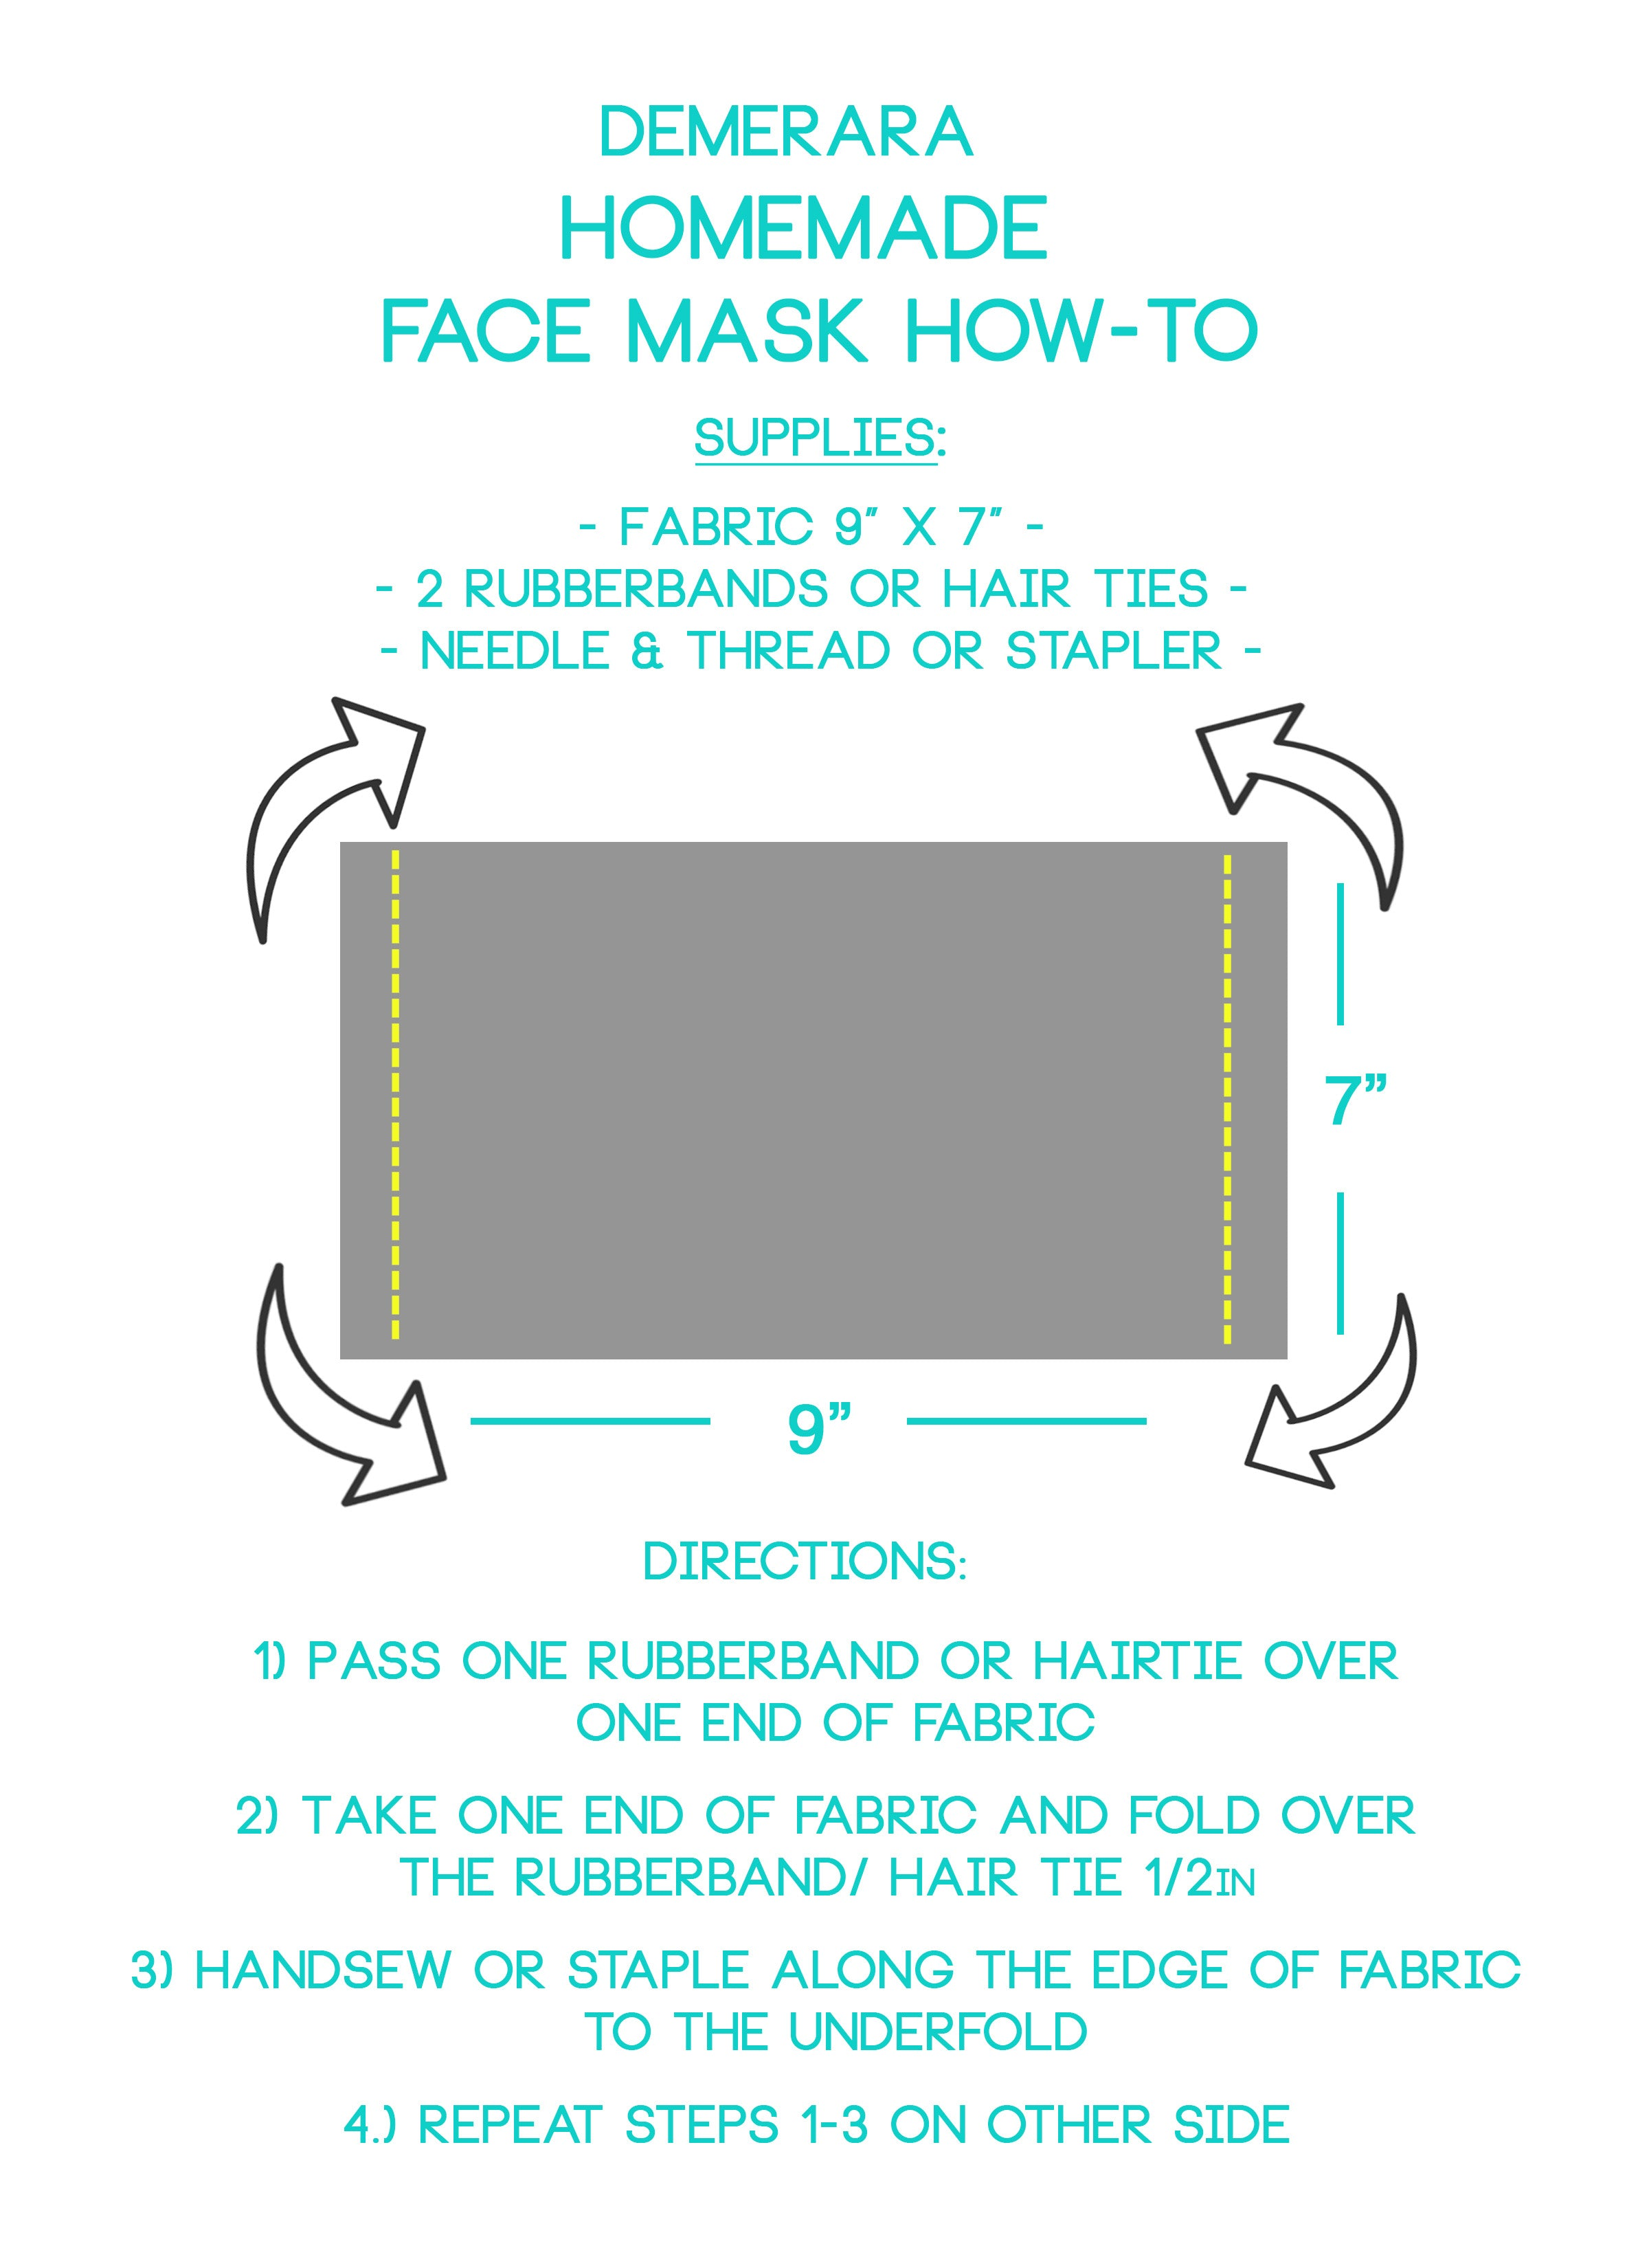 *FREE 5 Min Home Face Mask How-To*